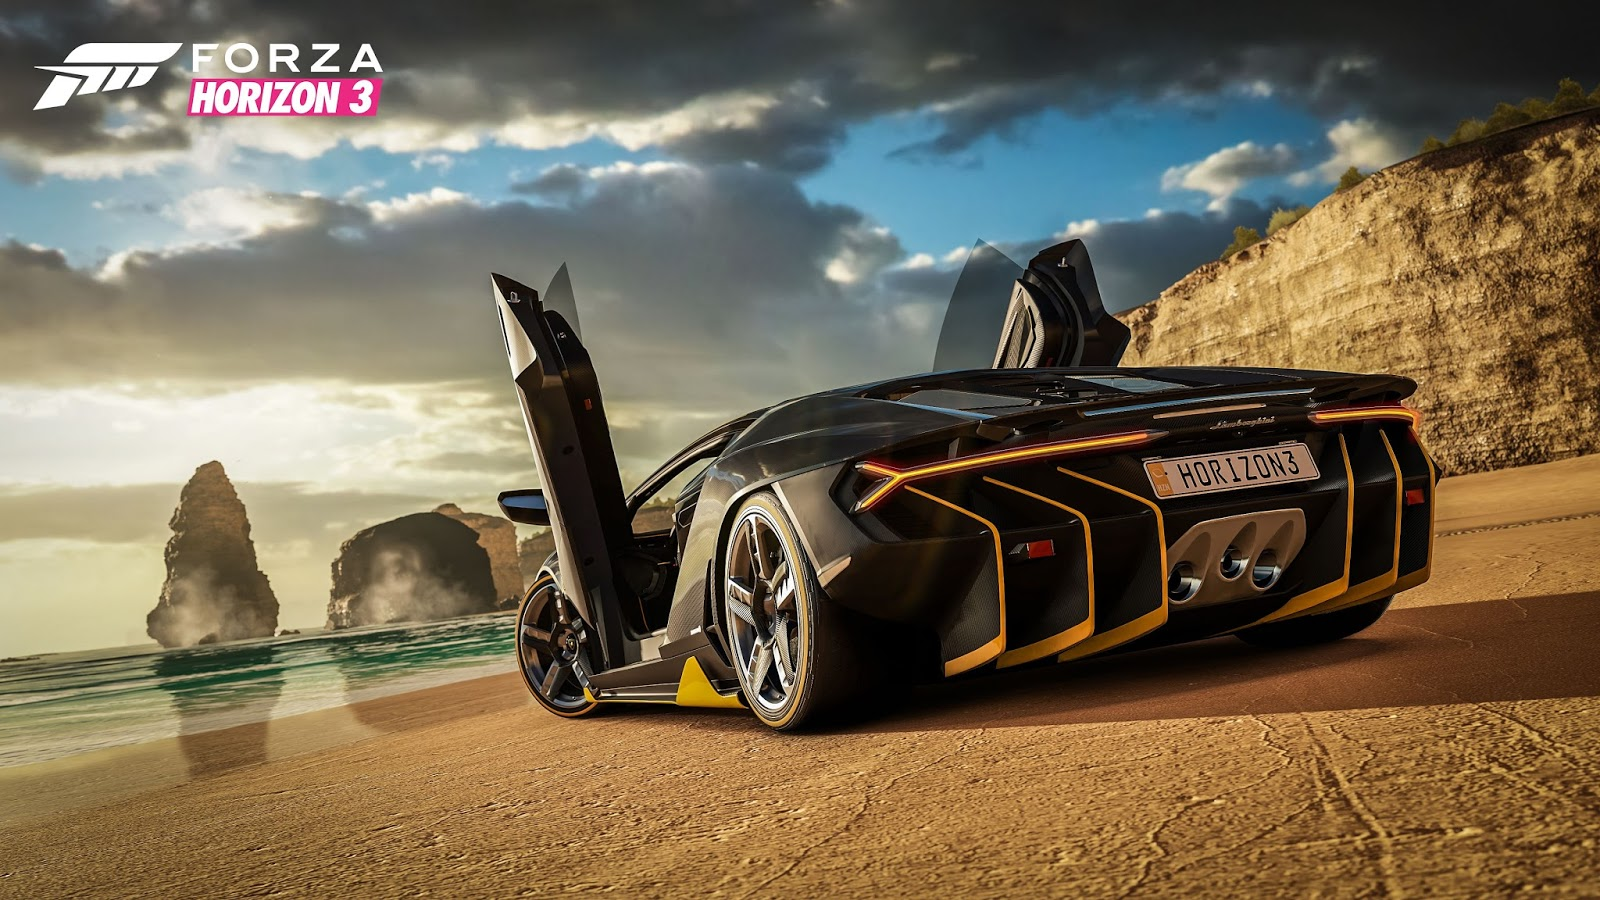 Download forza horizon 3 download for pc android ios download forza horizon 3 download for pc android ios malvernweather Choice Image